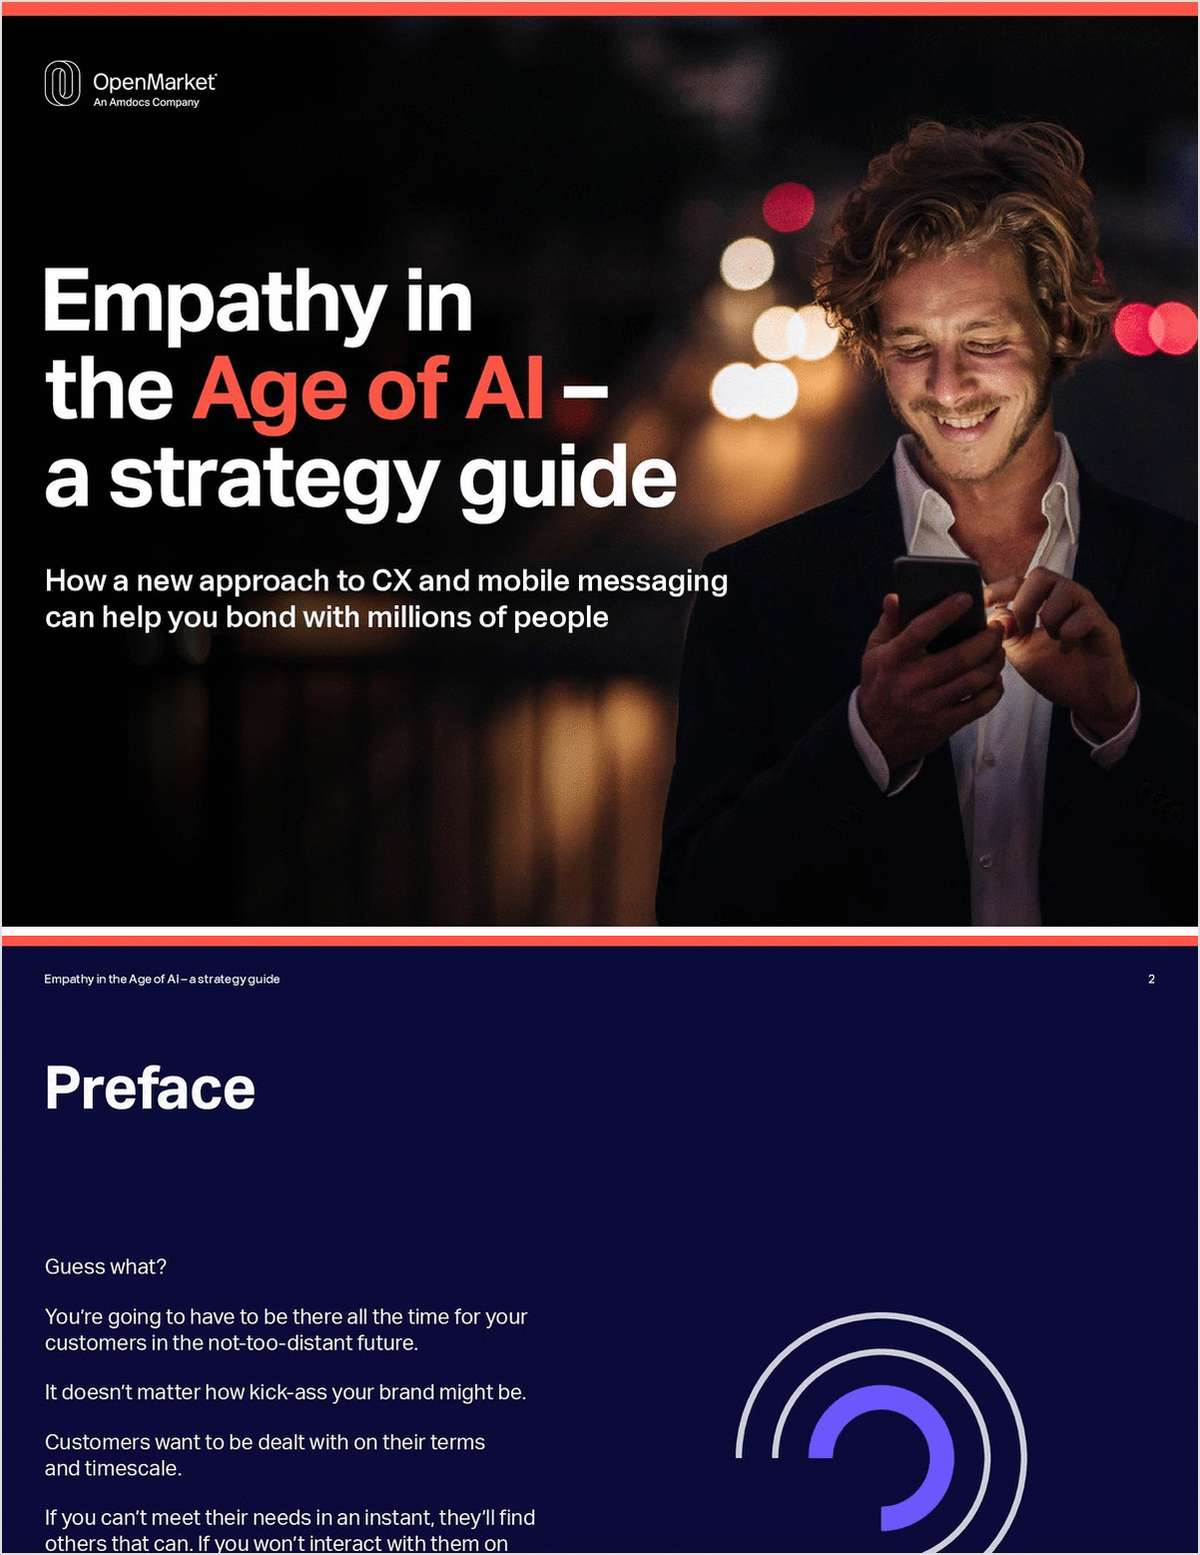 Empathy in the Age of AI -- CX Findings from Businesses and Consumers